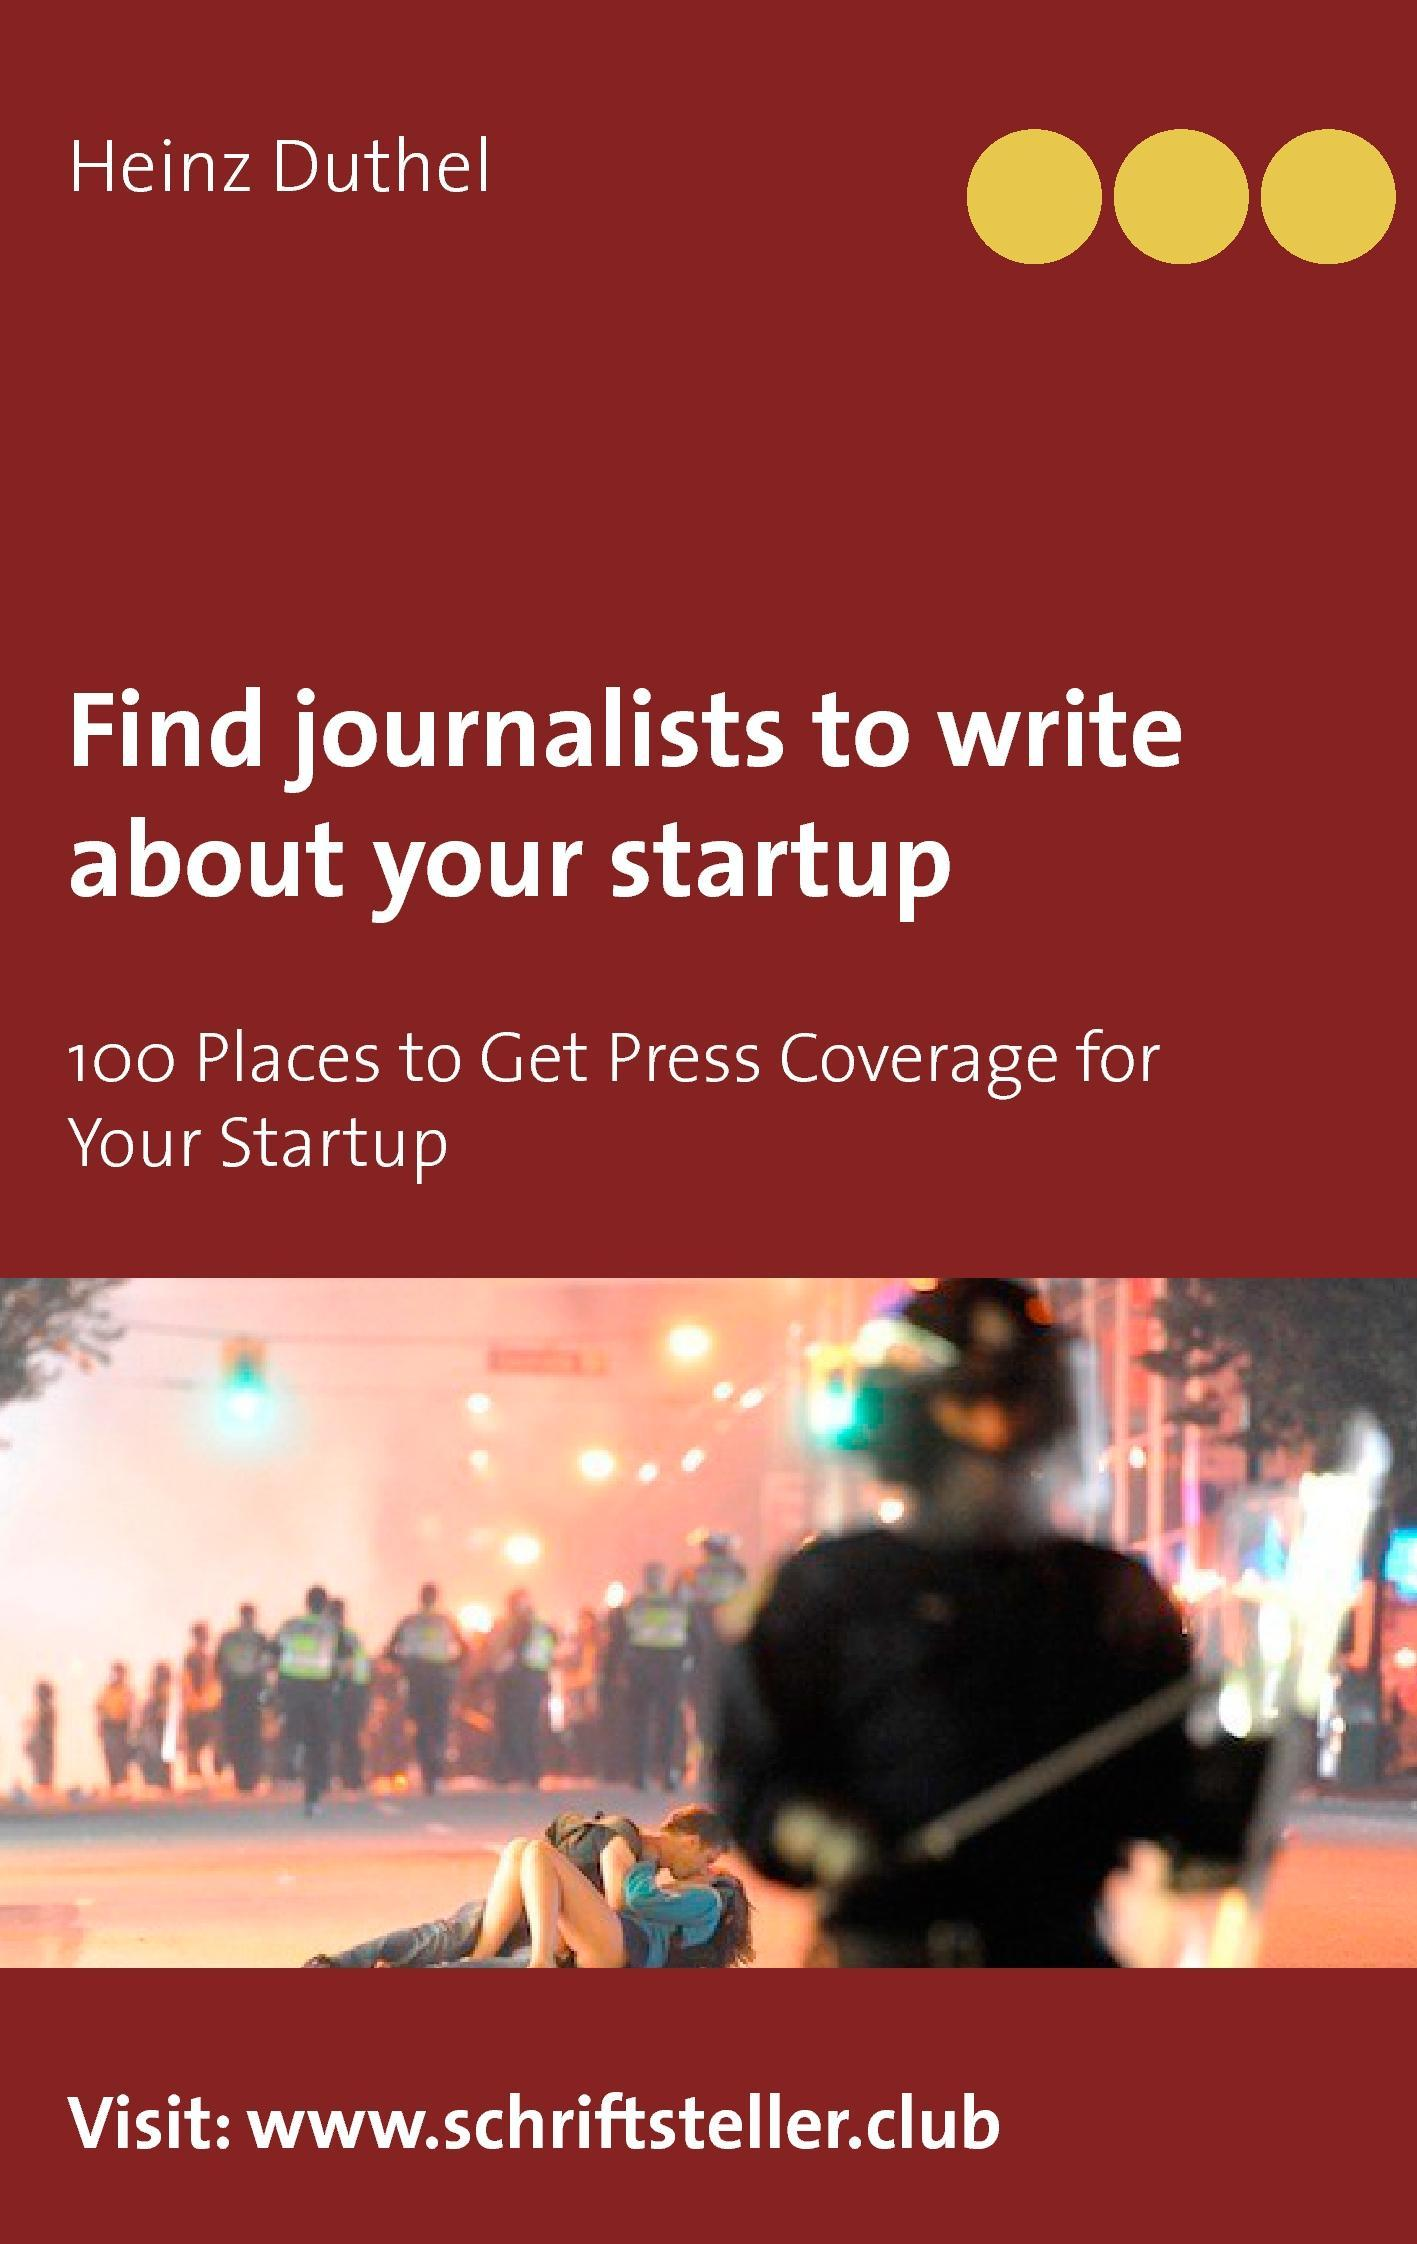 Find journalists to write about your startup - Heinz Duthel - 9783743162259